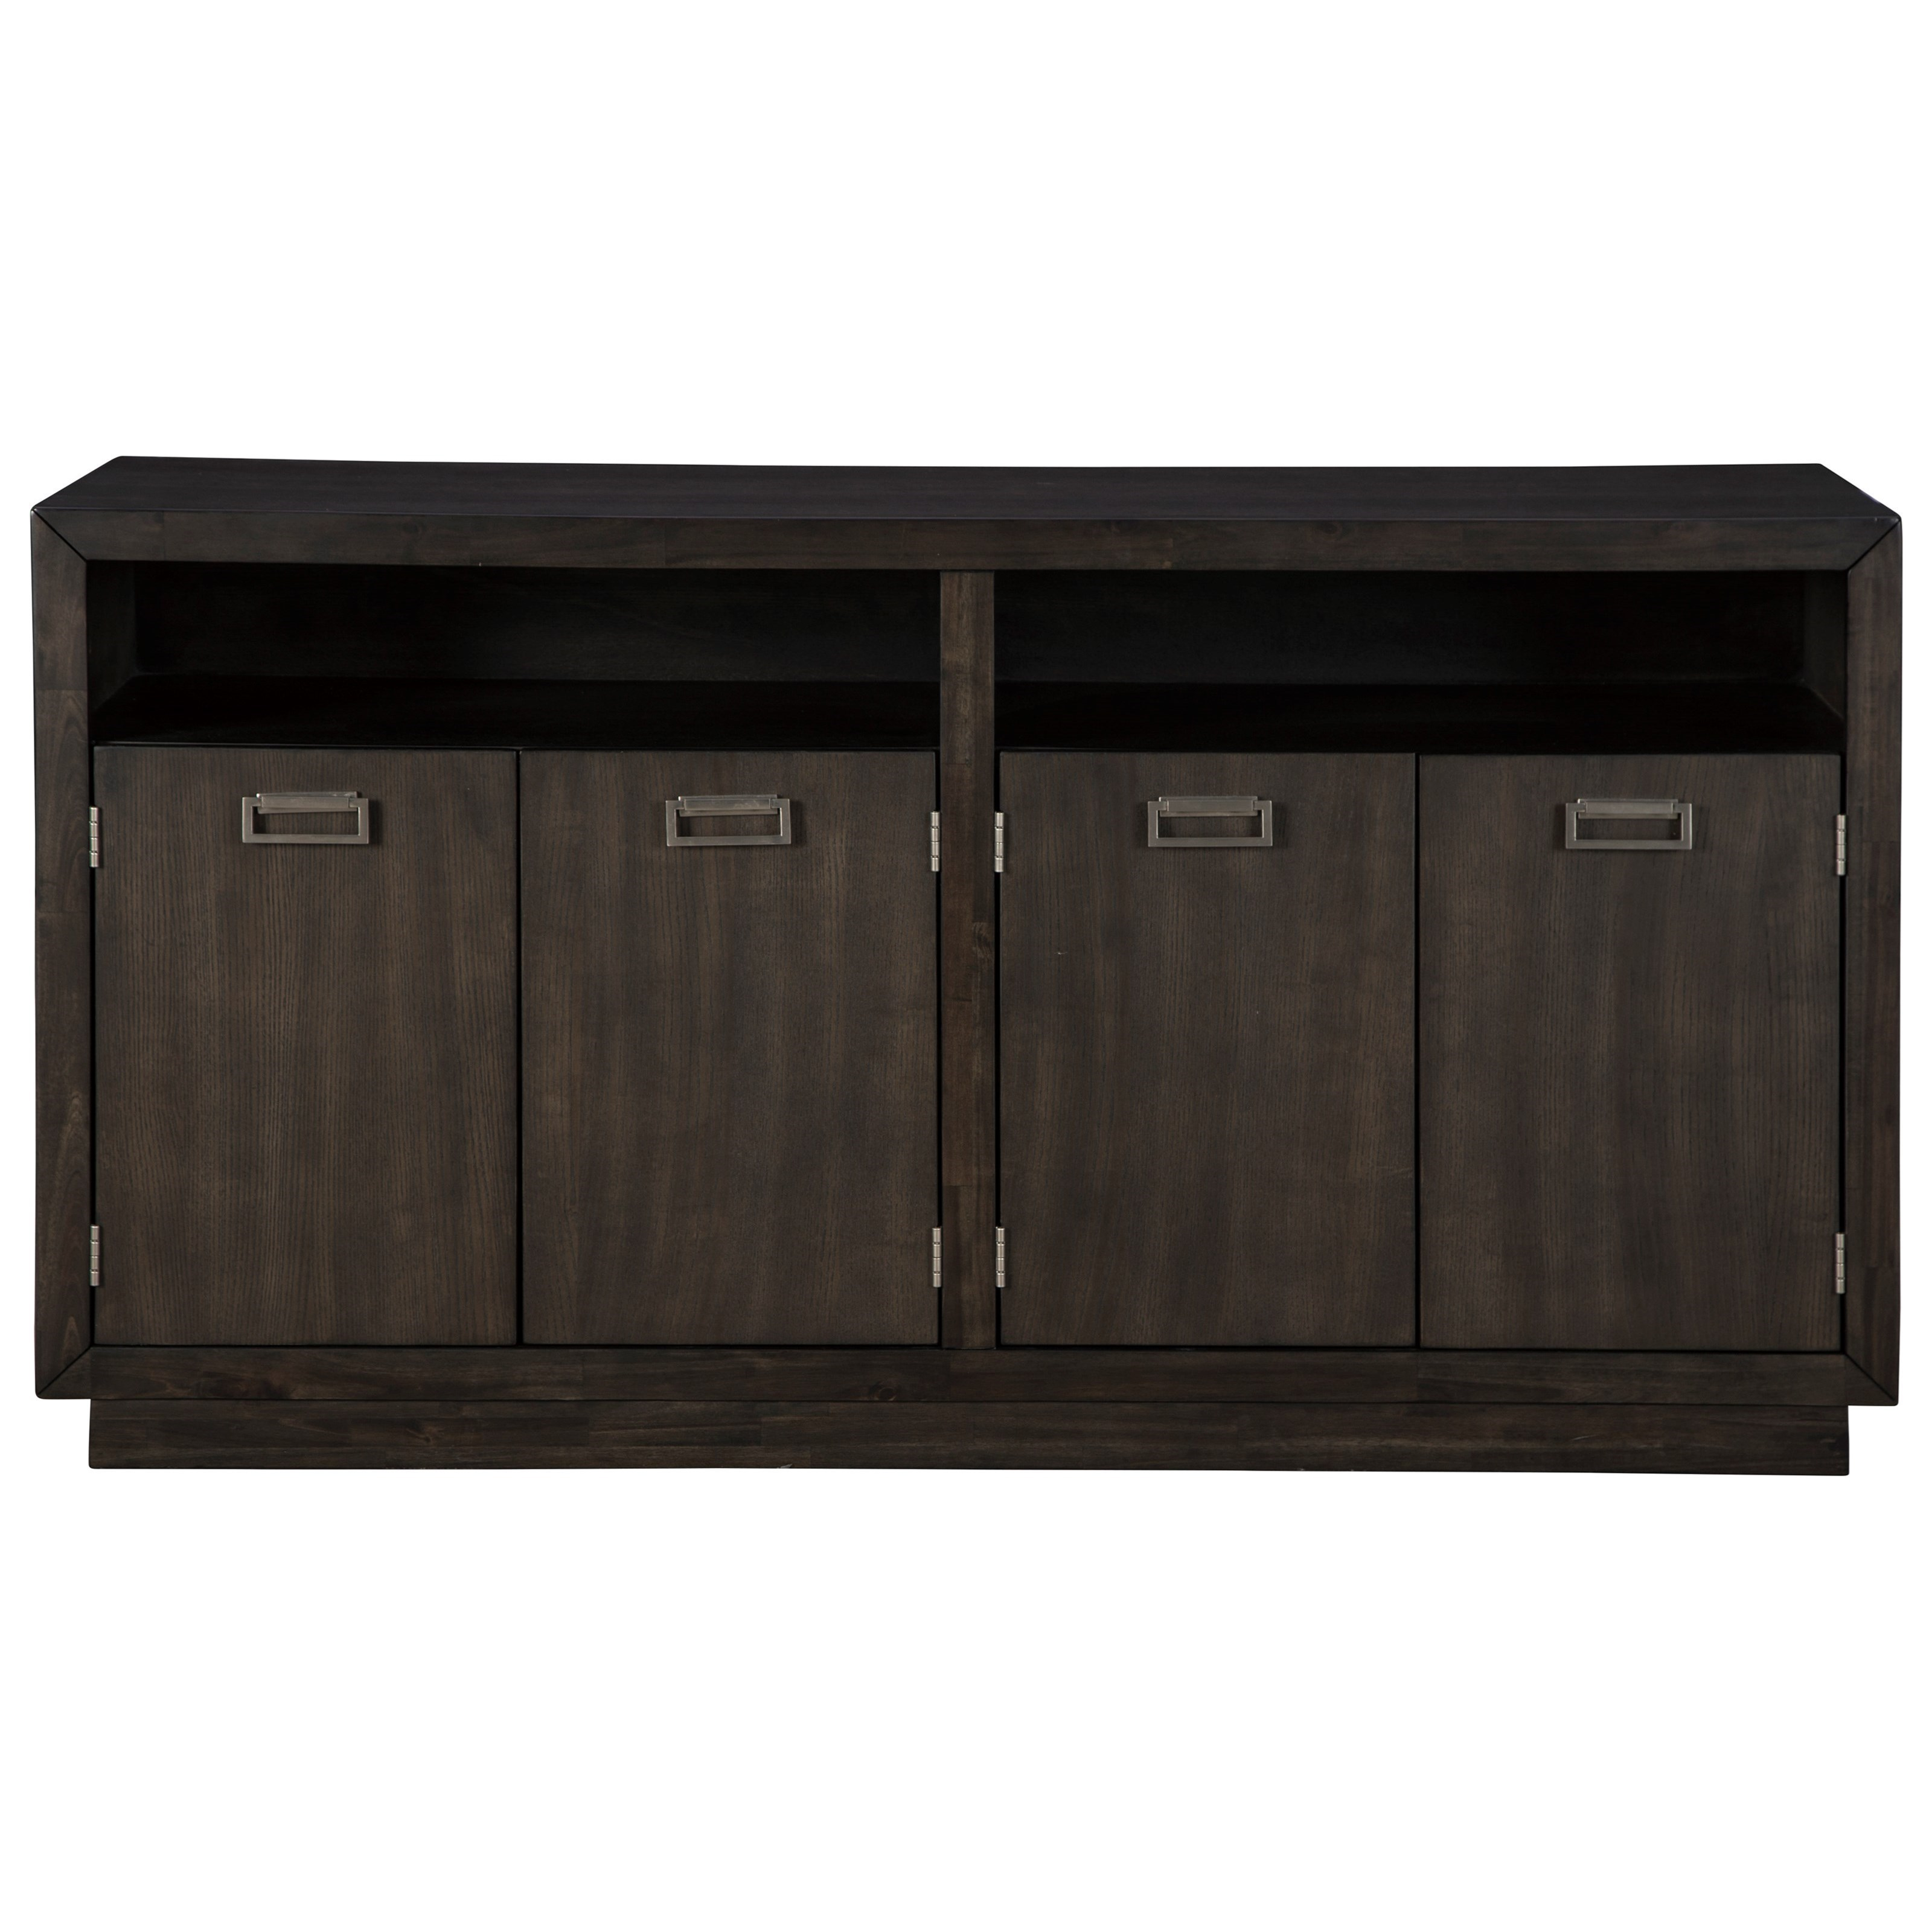 Sideboard Buffet Espresso Hyndell Contemporary Dining Room Server With Metal Accents In Dark Espresso Finish By Signature Design By Ashley At Rotmans